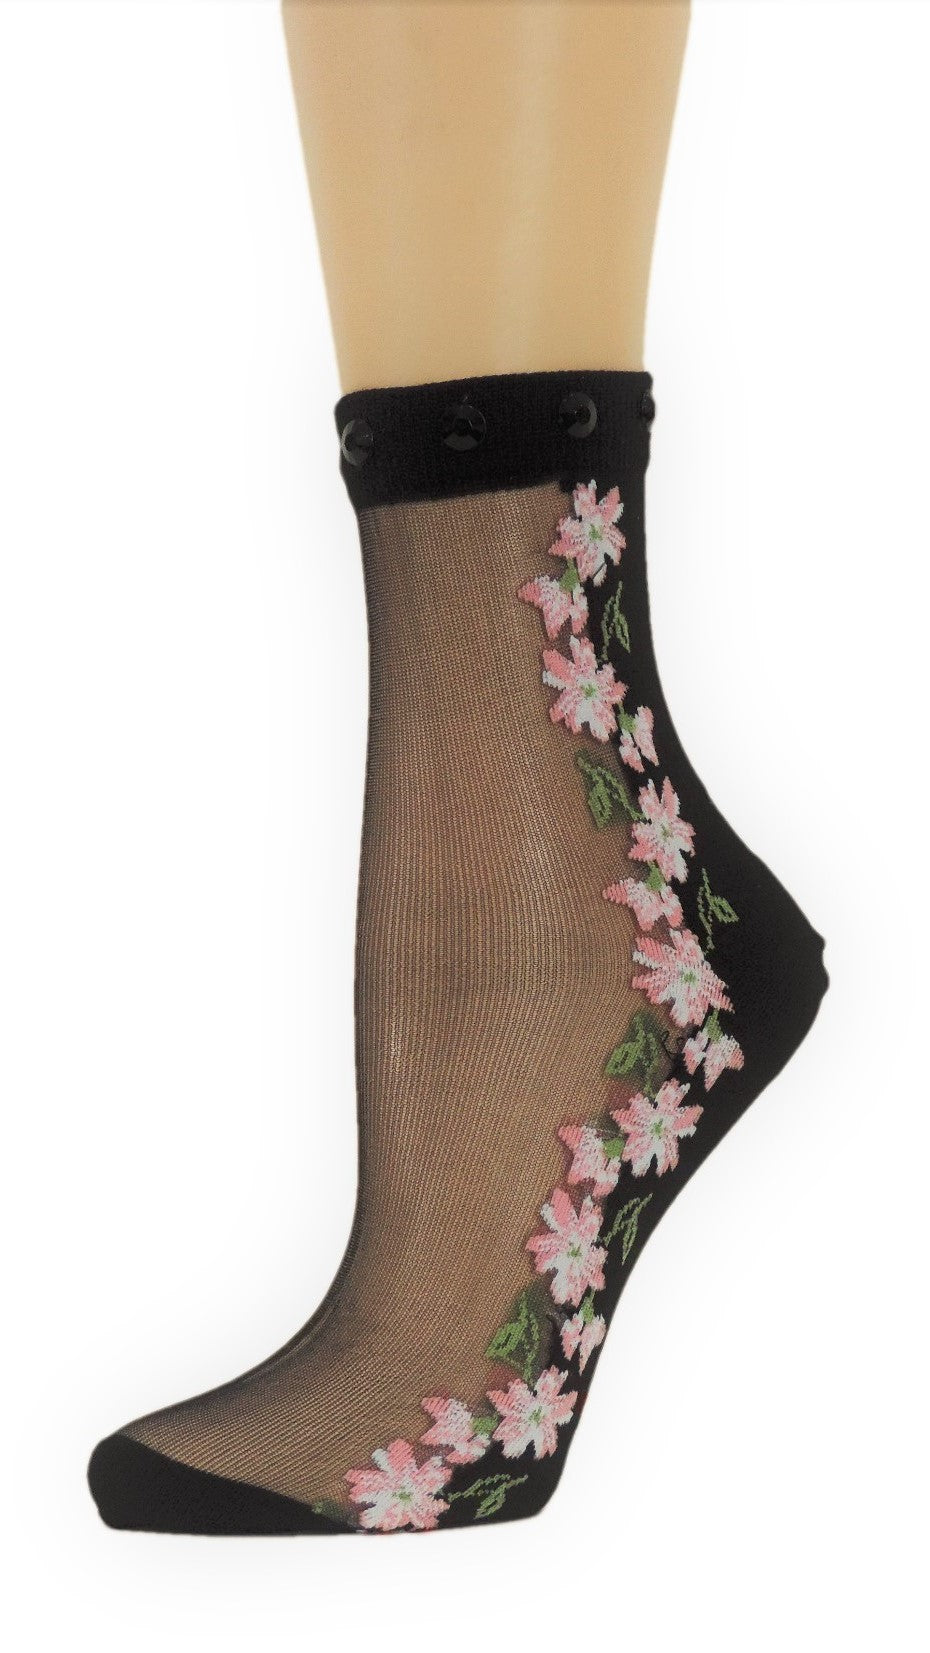 Happy Flowers Custom Sheer Socks with beads